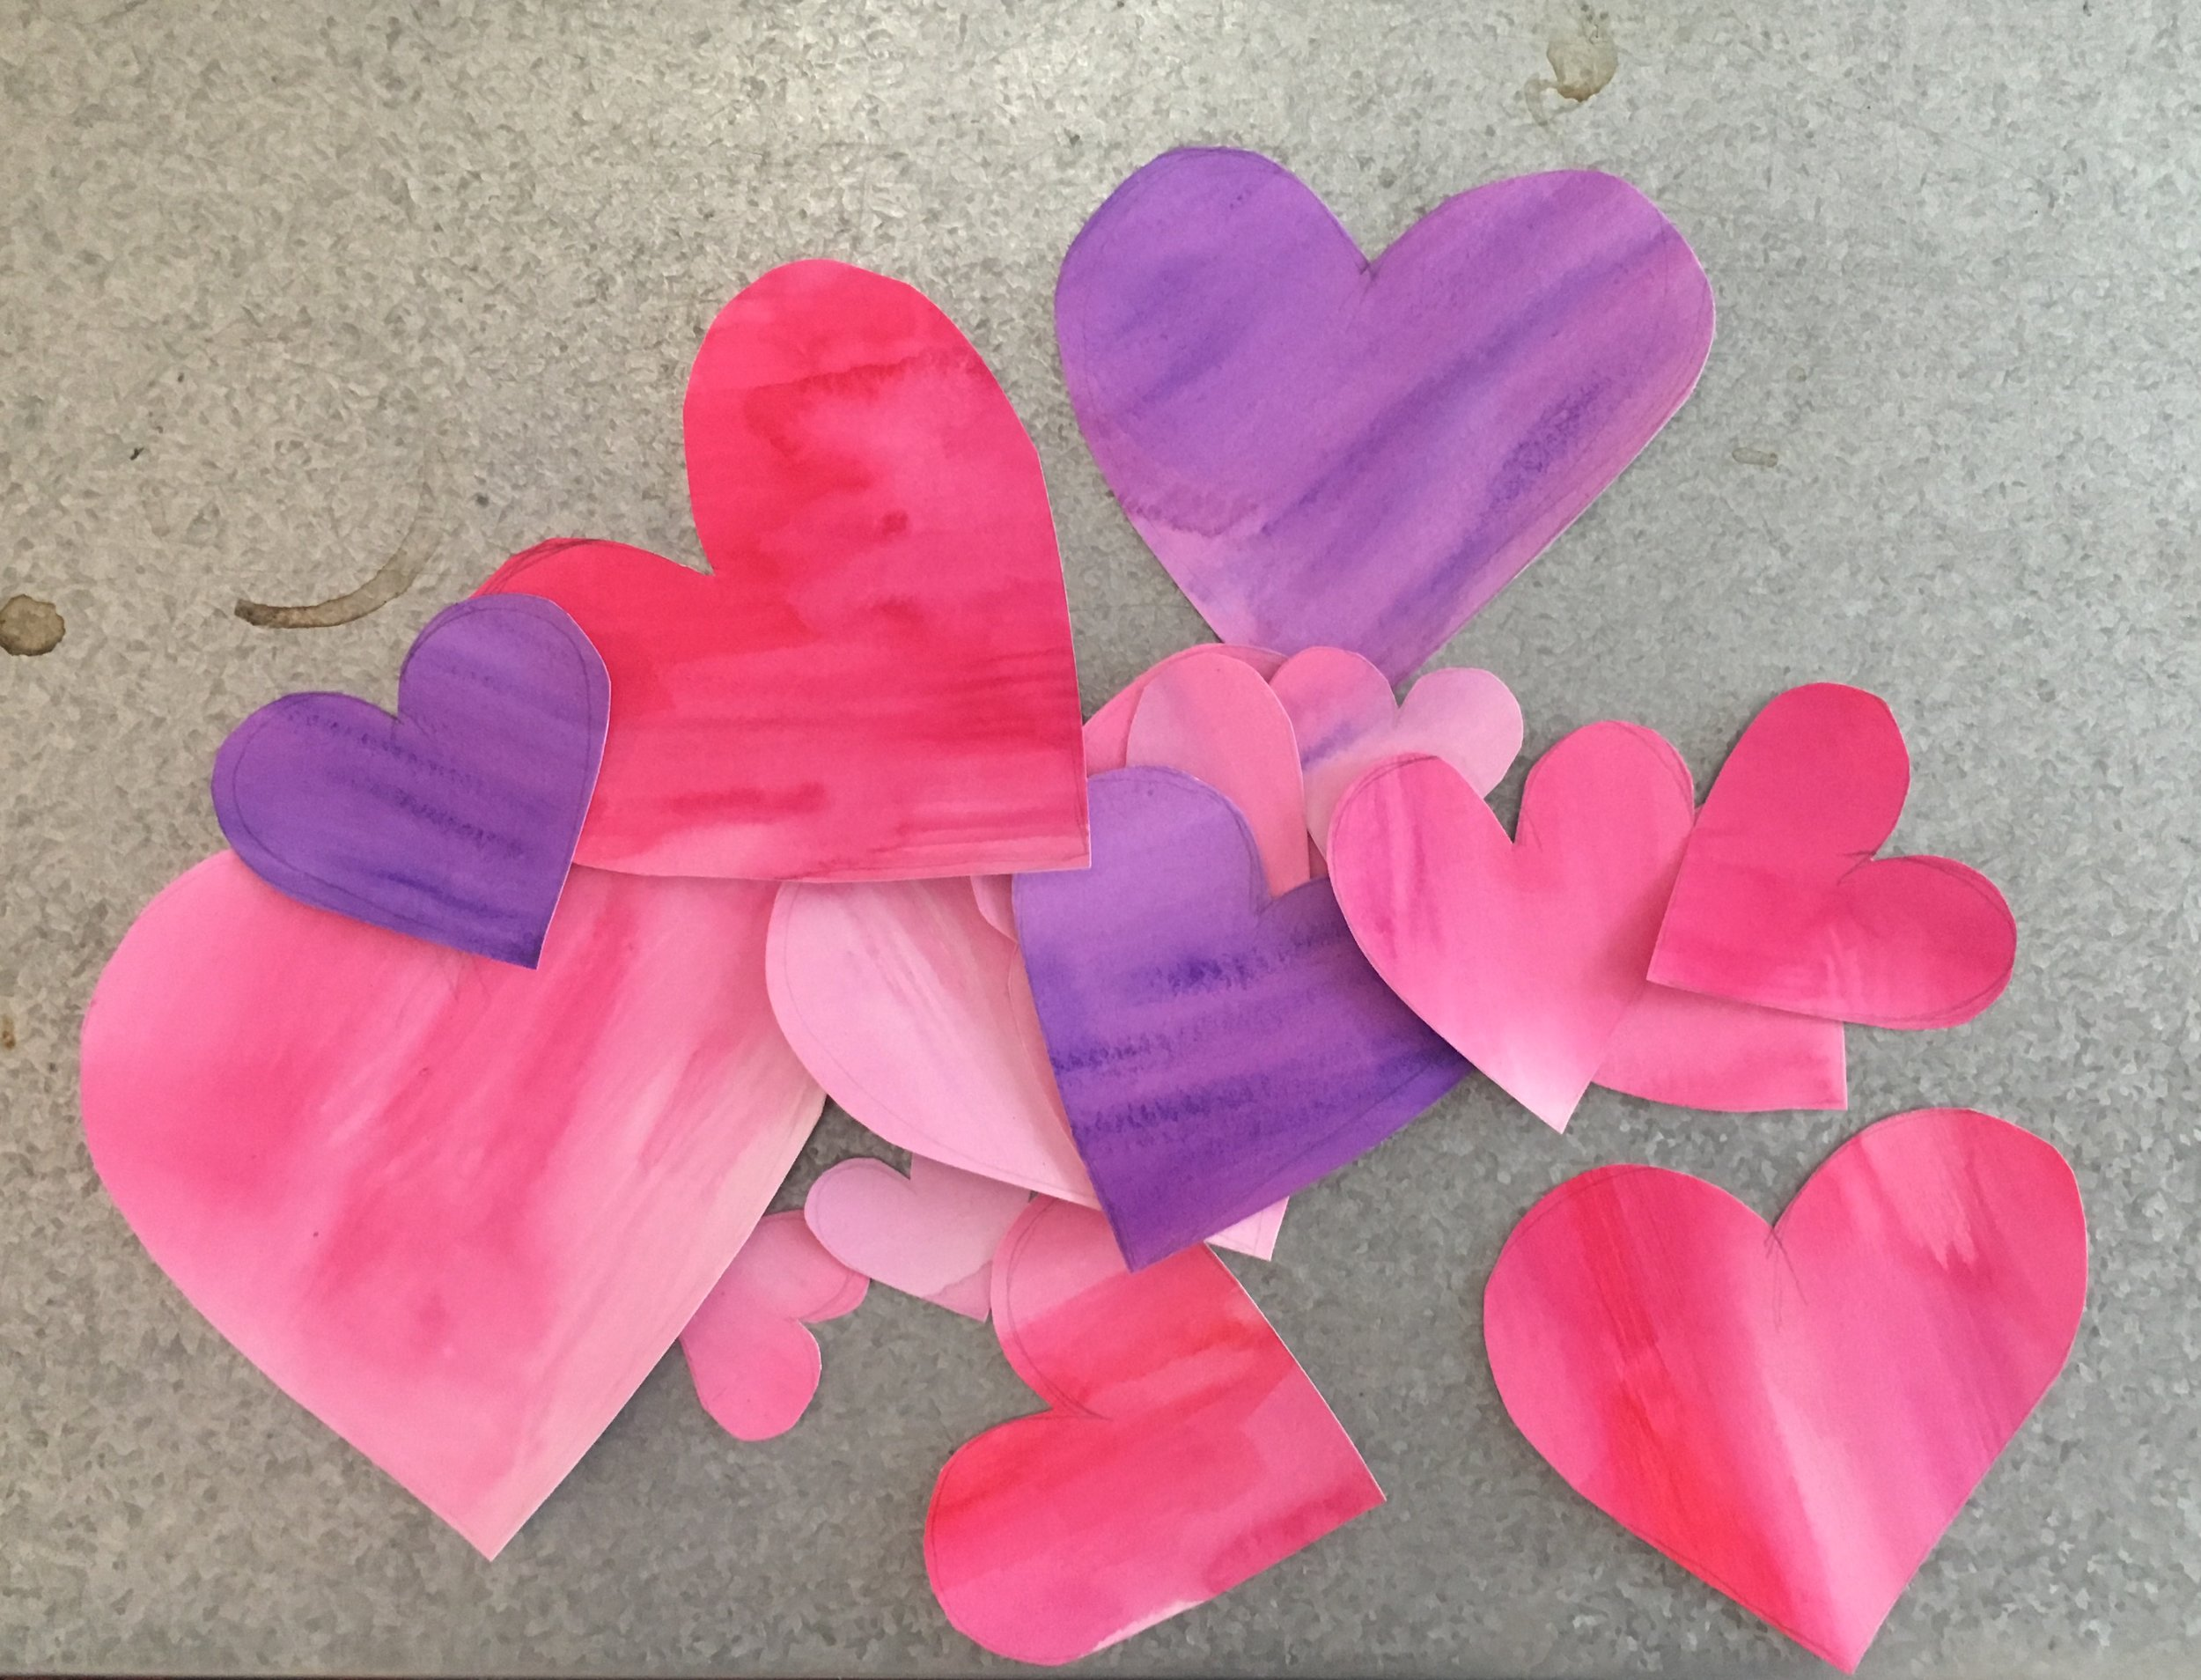 All the hearts cut out.